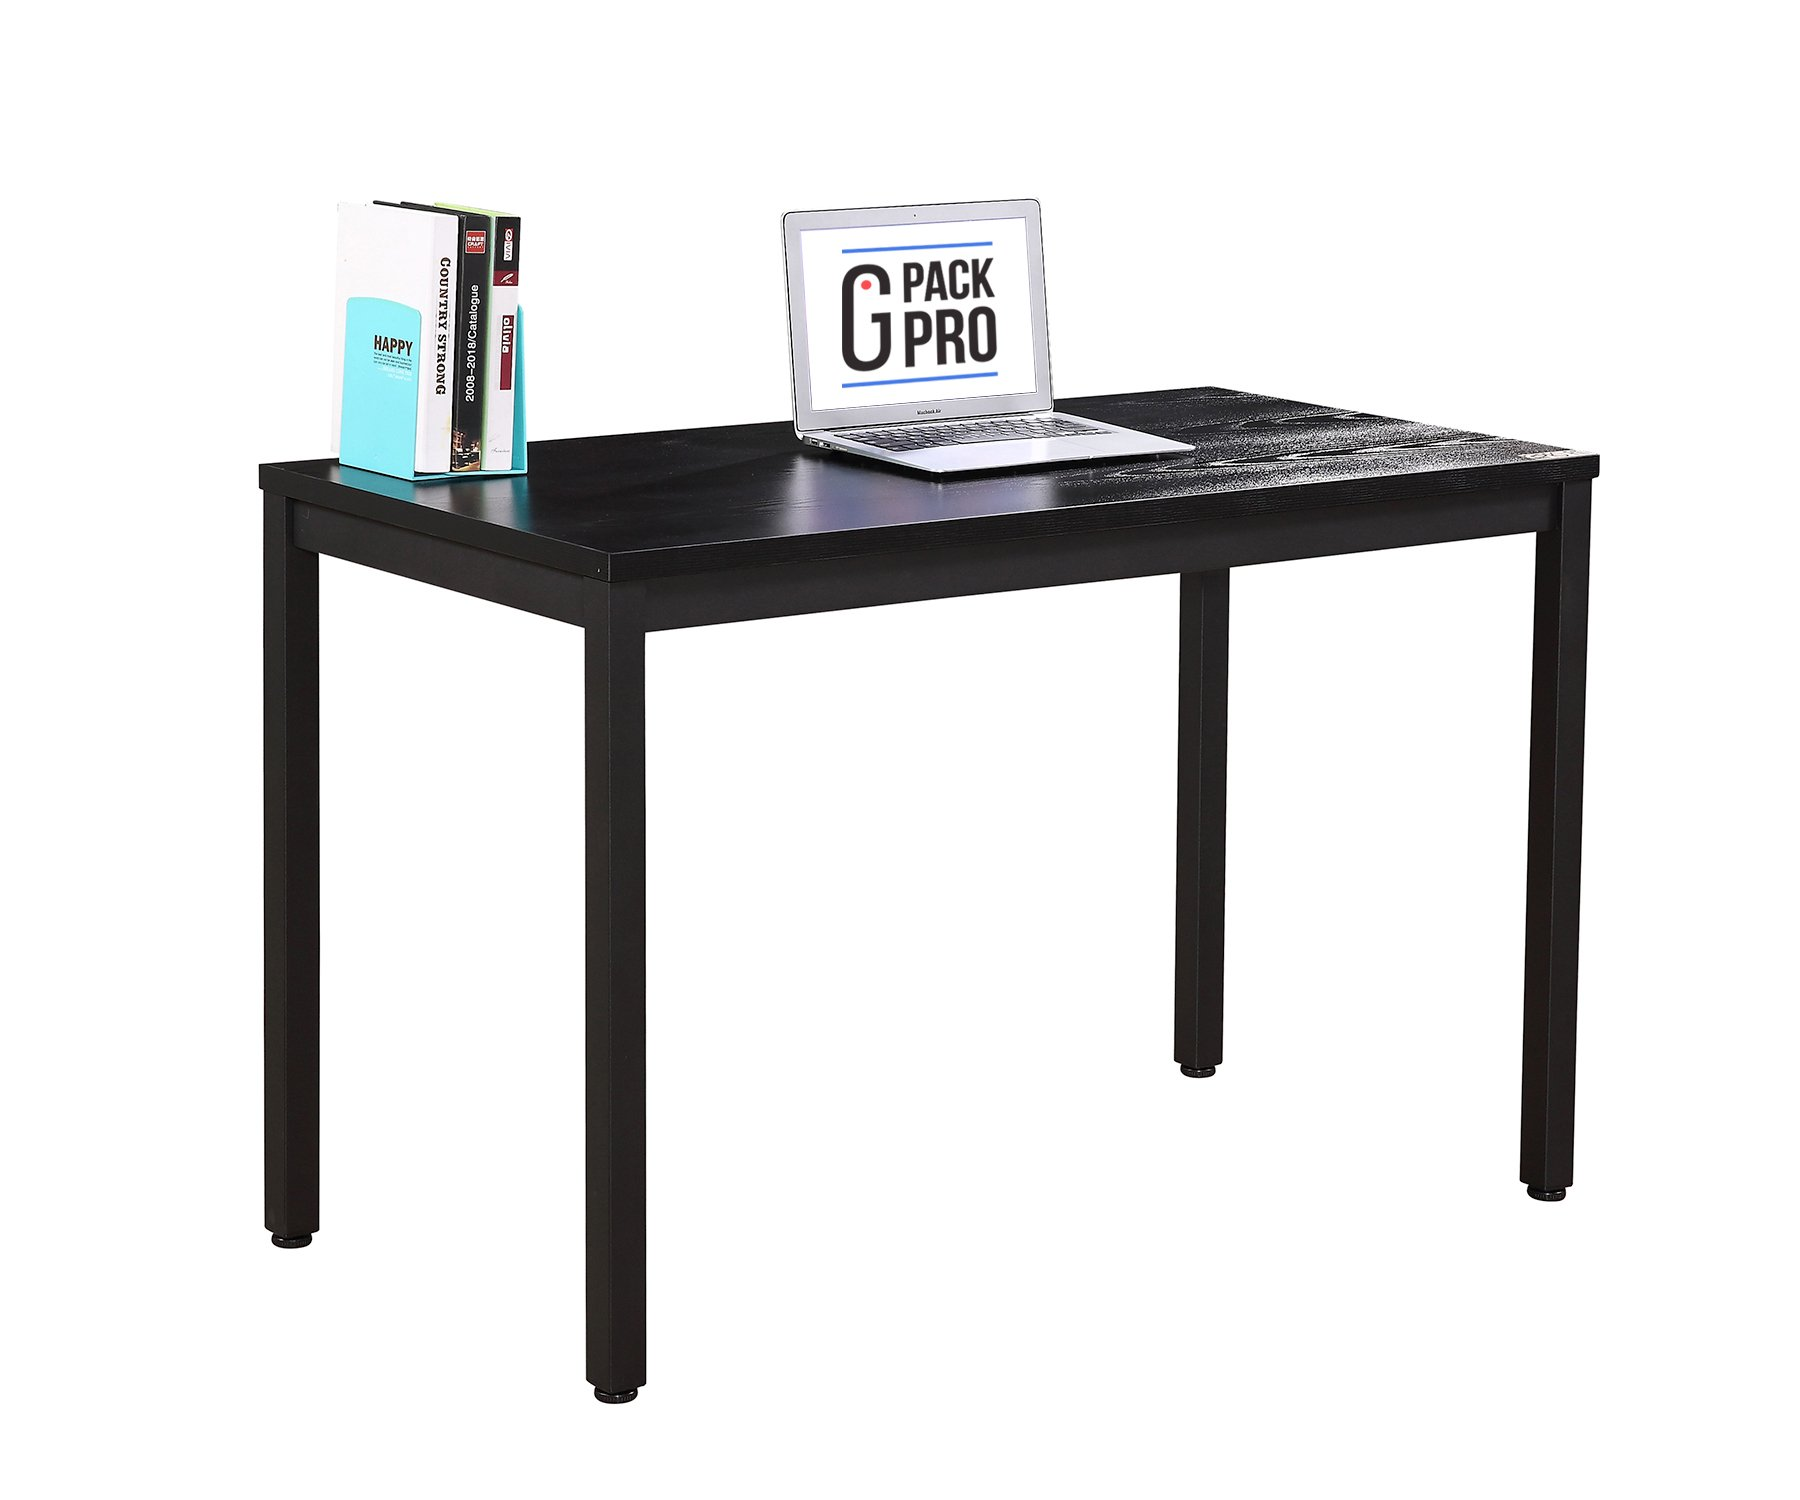 G-PACK PRO Computer Desk 47'' Computer Table/Office Desk Workstation for Home & Office Use,Black (GPPTBL)